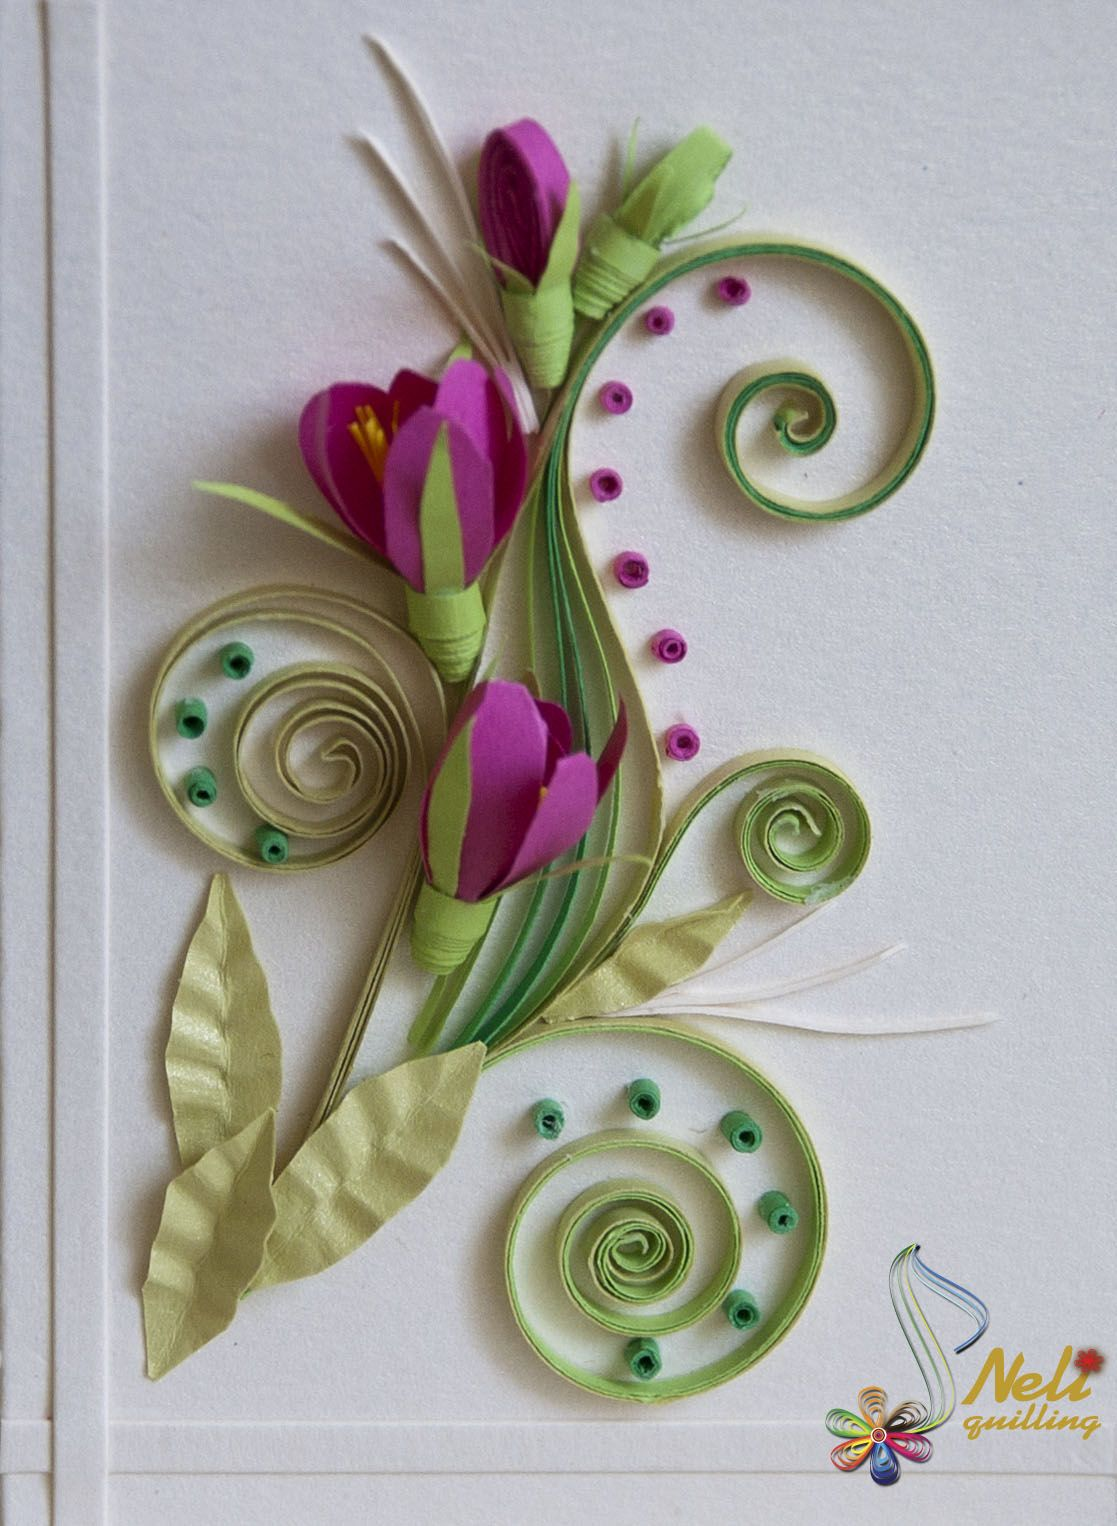 Armario Que Vira Mesa Magazine Luiza ~ 1000+ images about Paper quilling on Pinterest Neli quilling, Quilling and Quilling cards